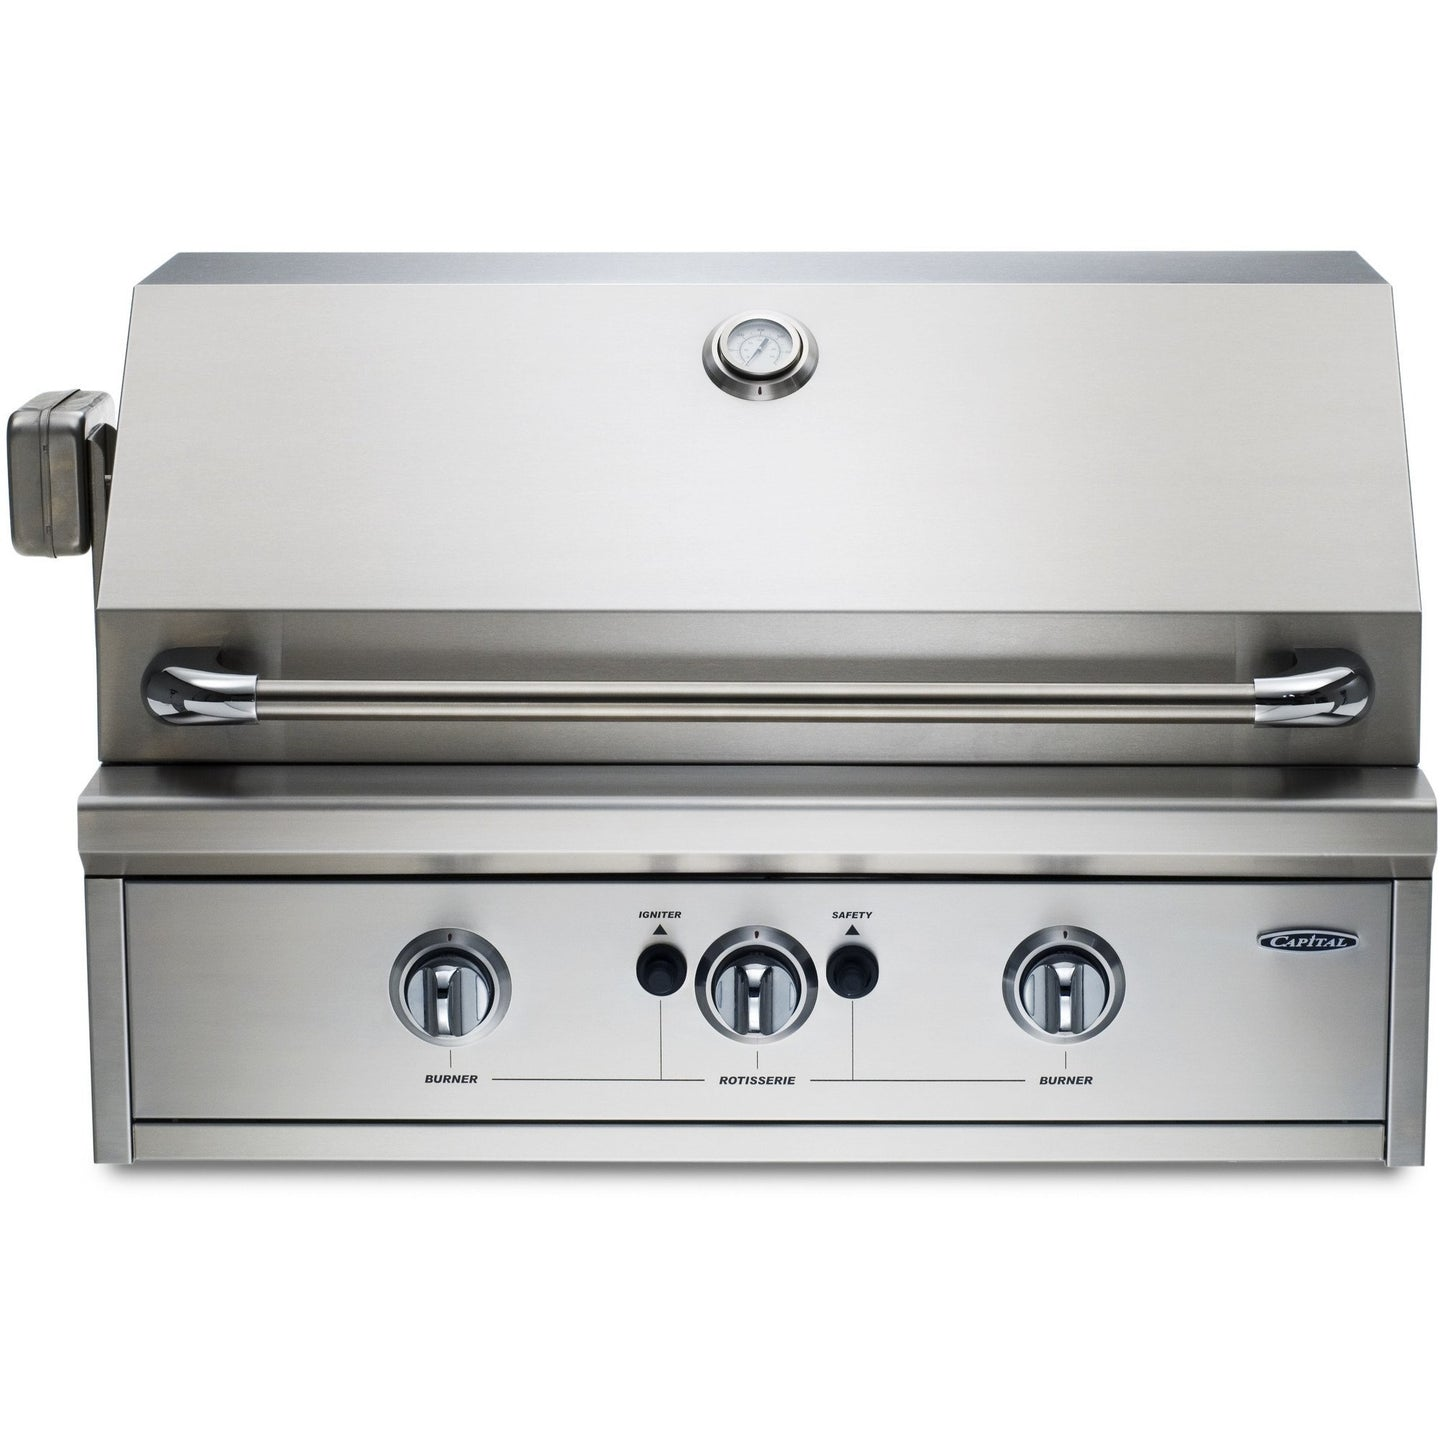 Capital Professional Series 32-Inch PRO32BI Built-In Grill - M&K Grills